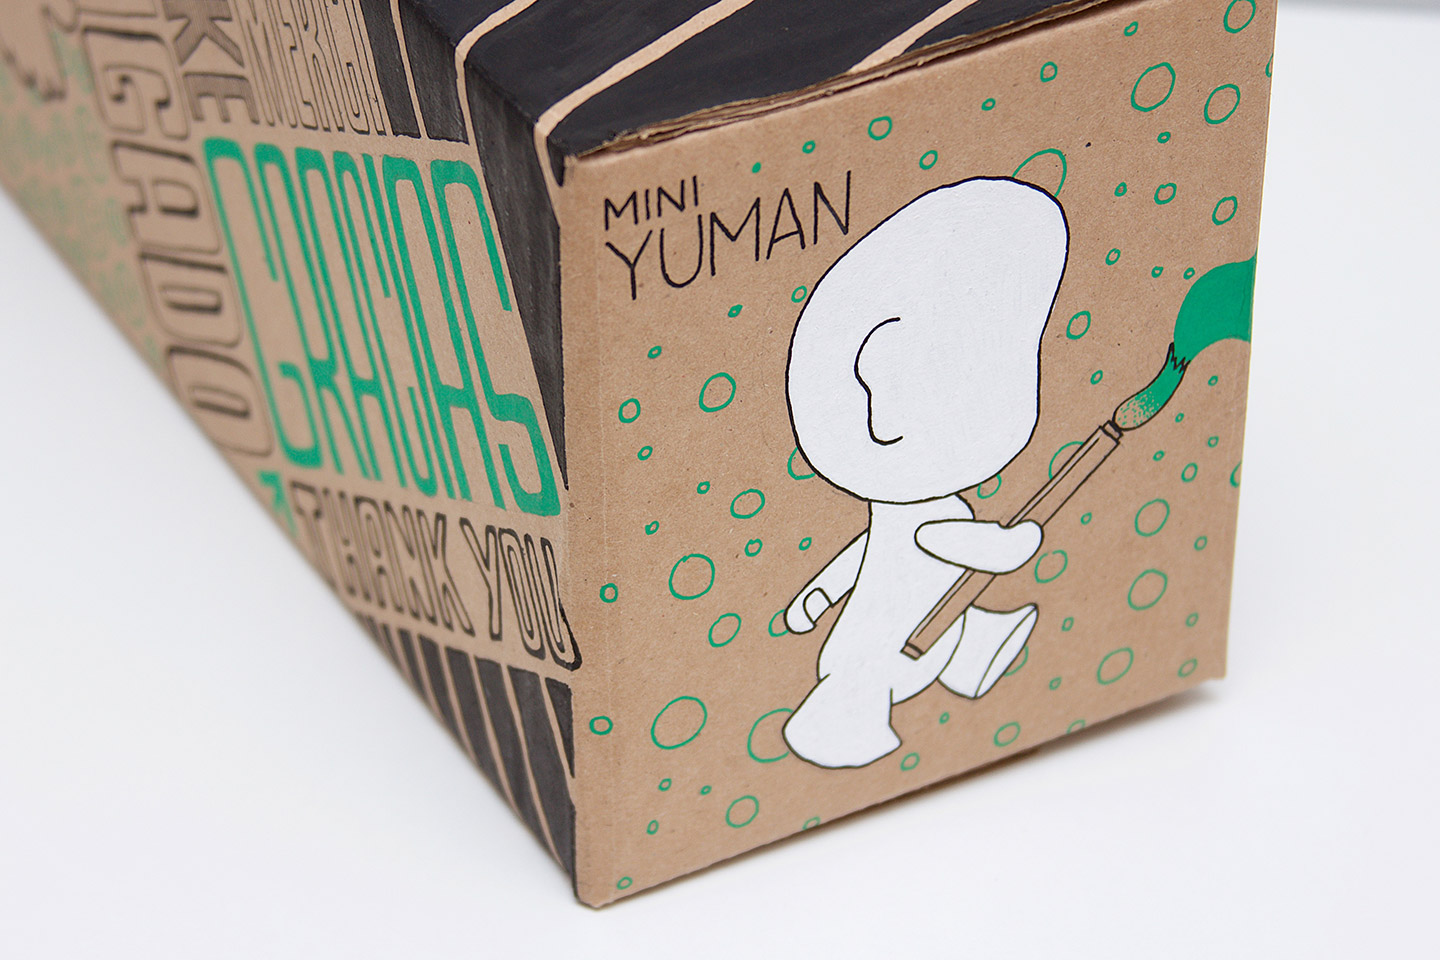 magelstudio_sketchbox_mini_yuman_1_06